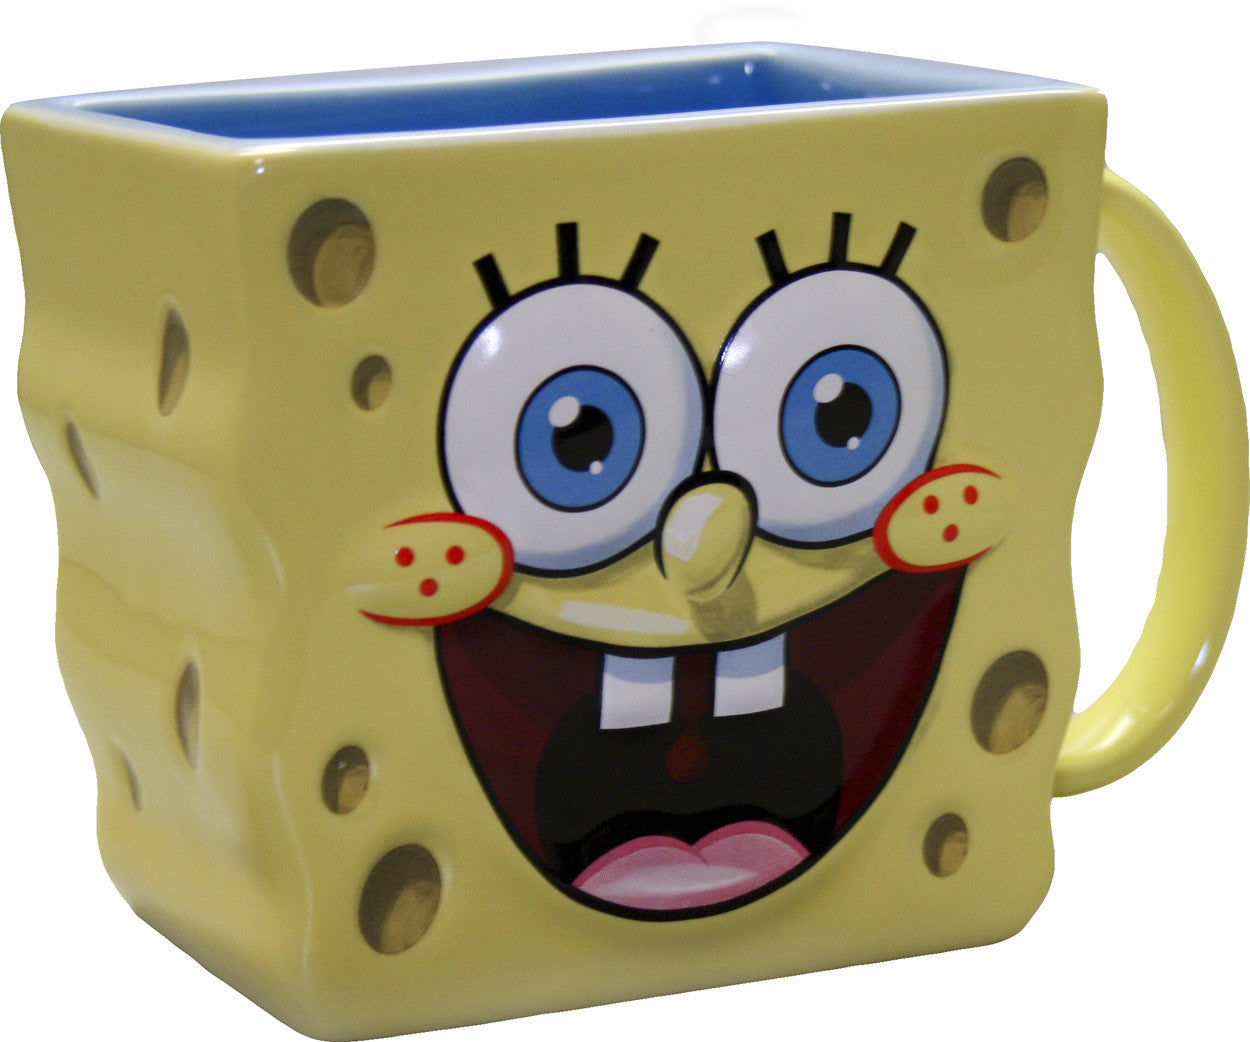 SpongeBob SquarePants face mug